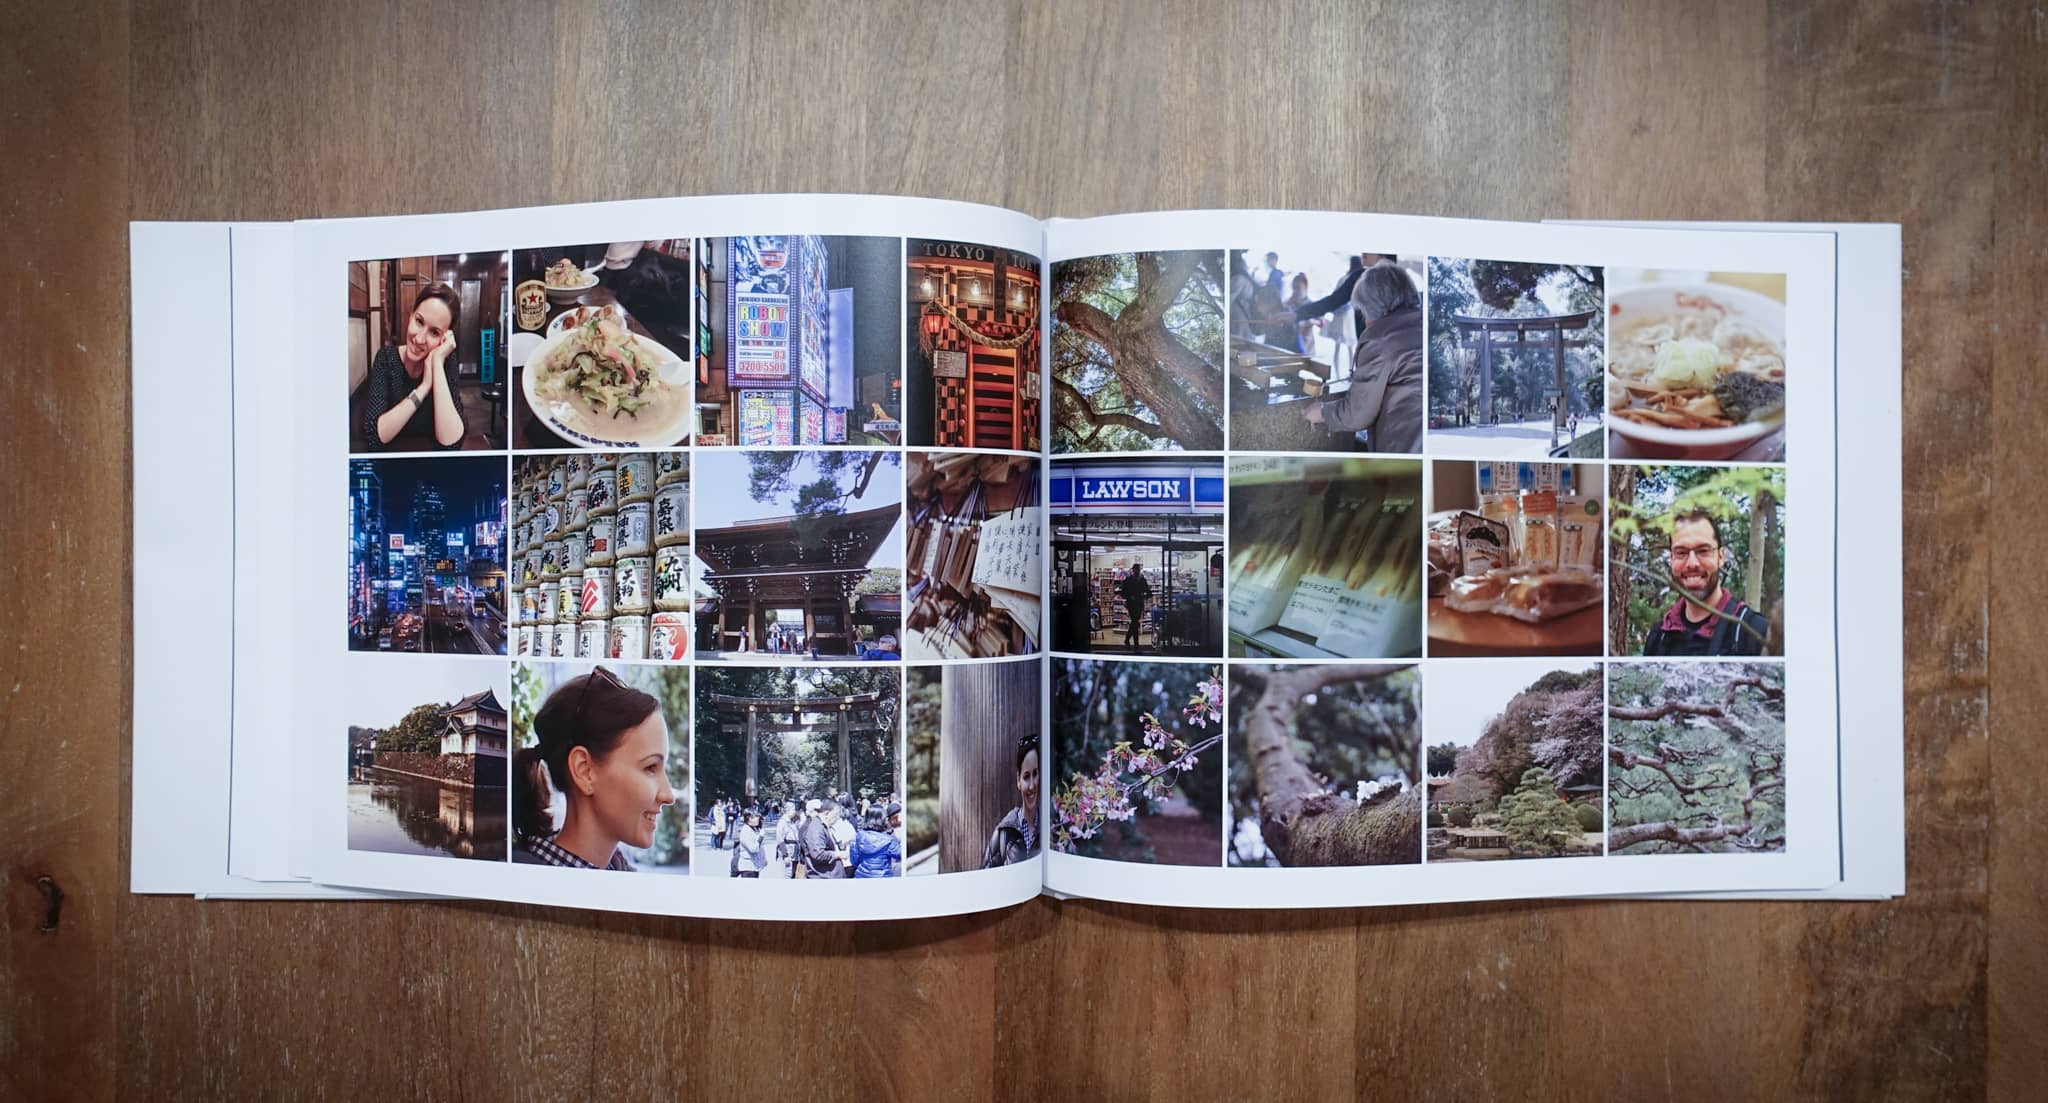 Jim S. makes a photobook of his B roll shots from his travels